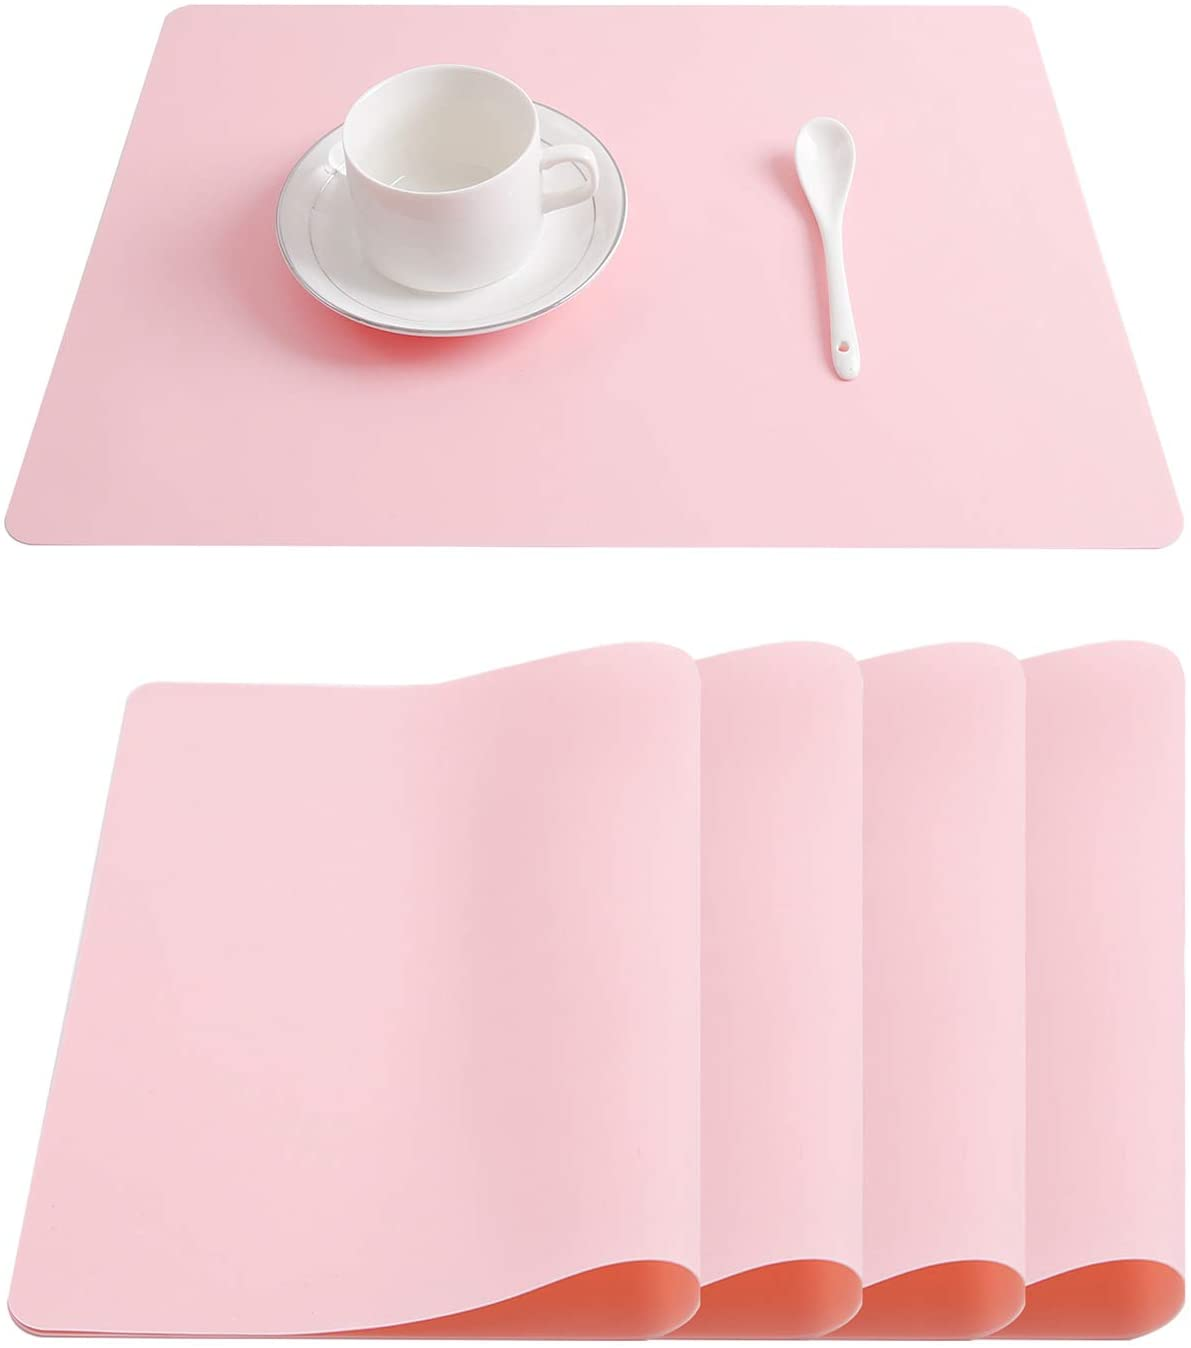 Topfinel Silicone Placemats Set of 4 Heat Resistant Non-Slip Table Mats for Kids Kitchen Dining Table Wipeable Waterproof 12 x 16 Inch, Pink